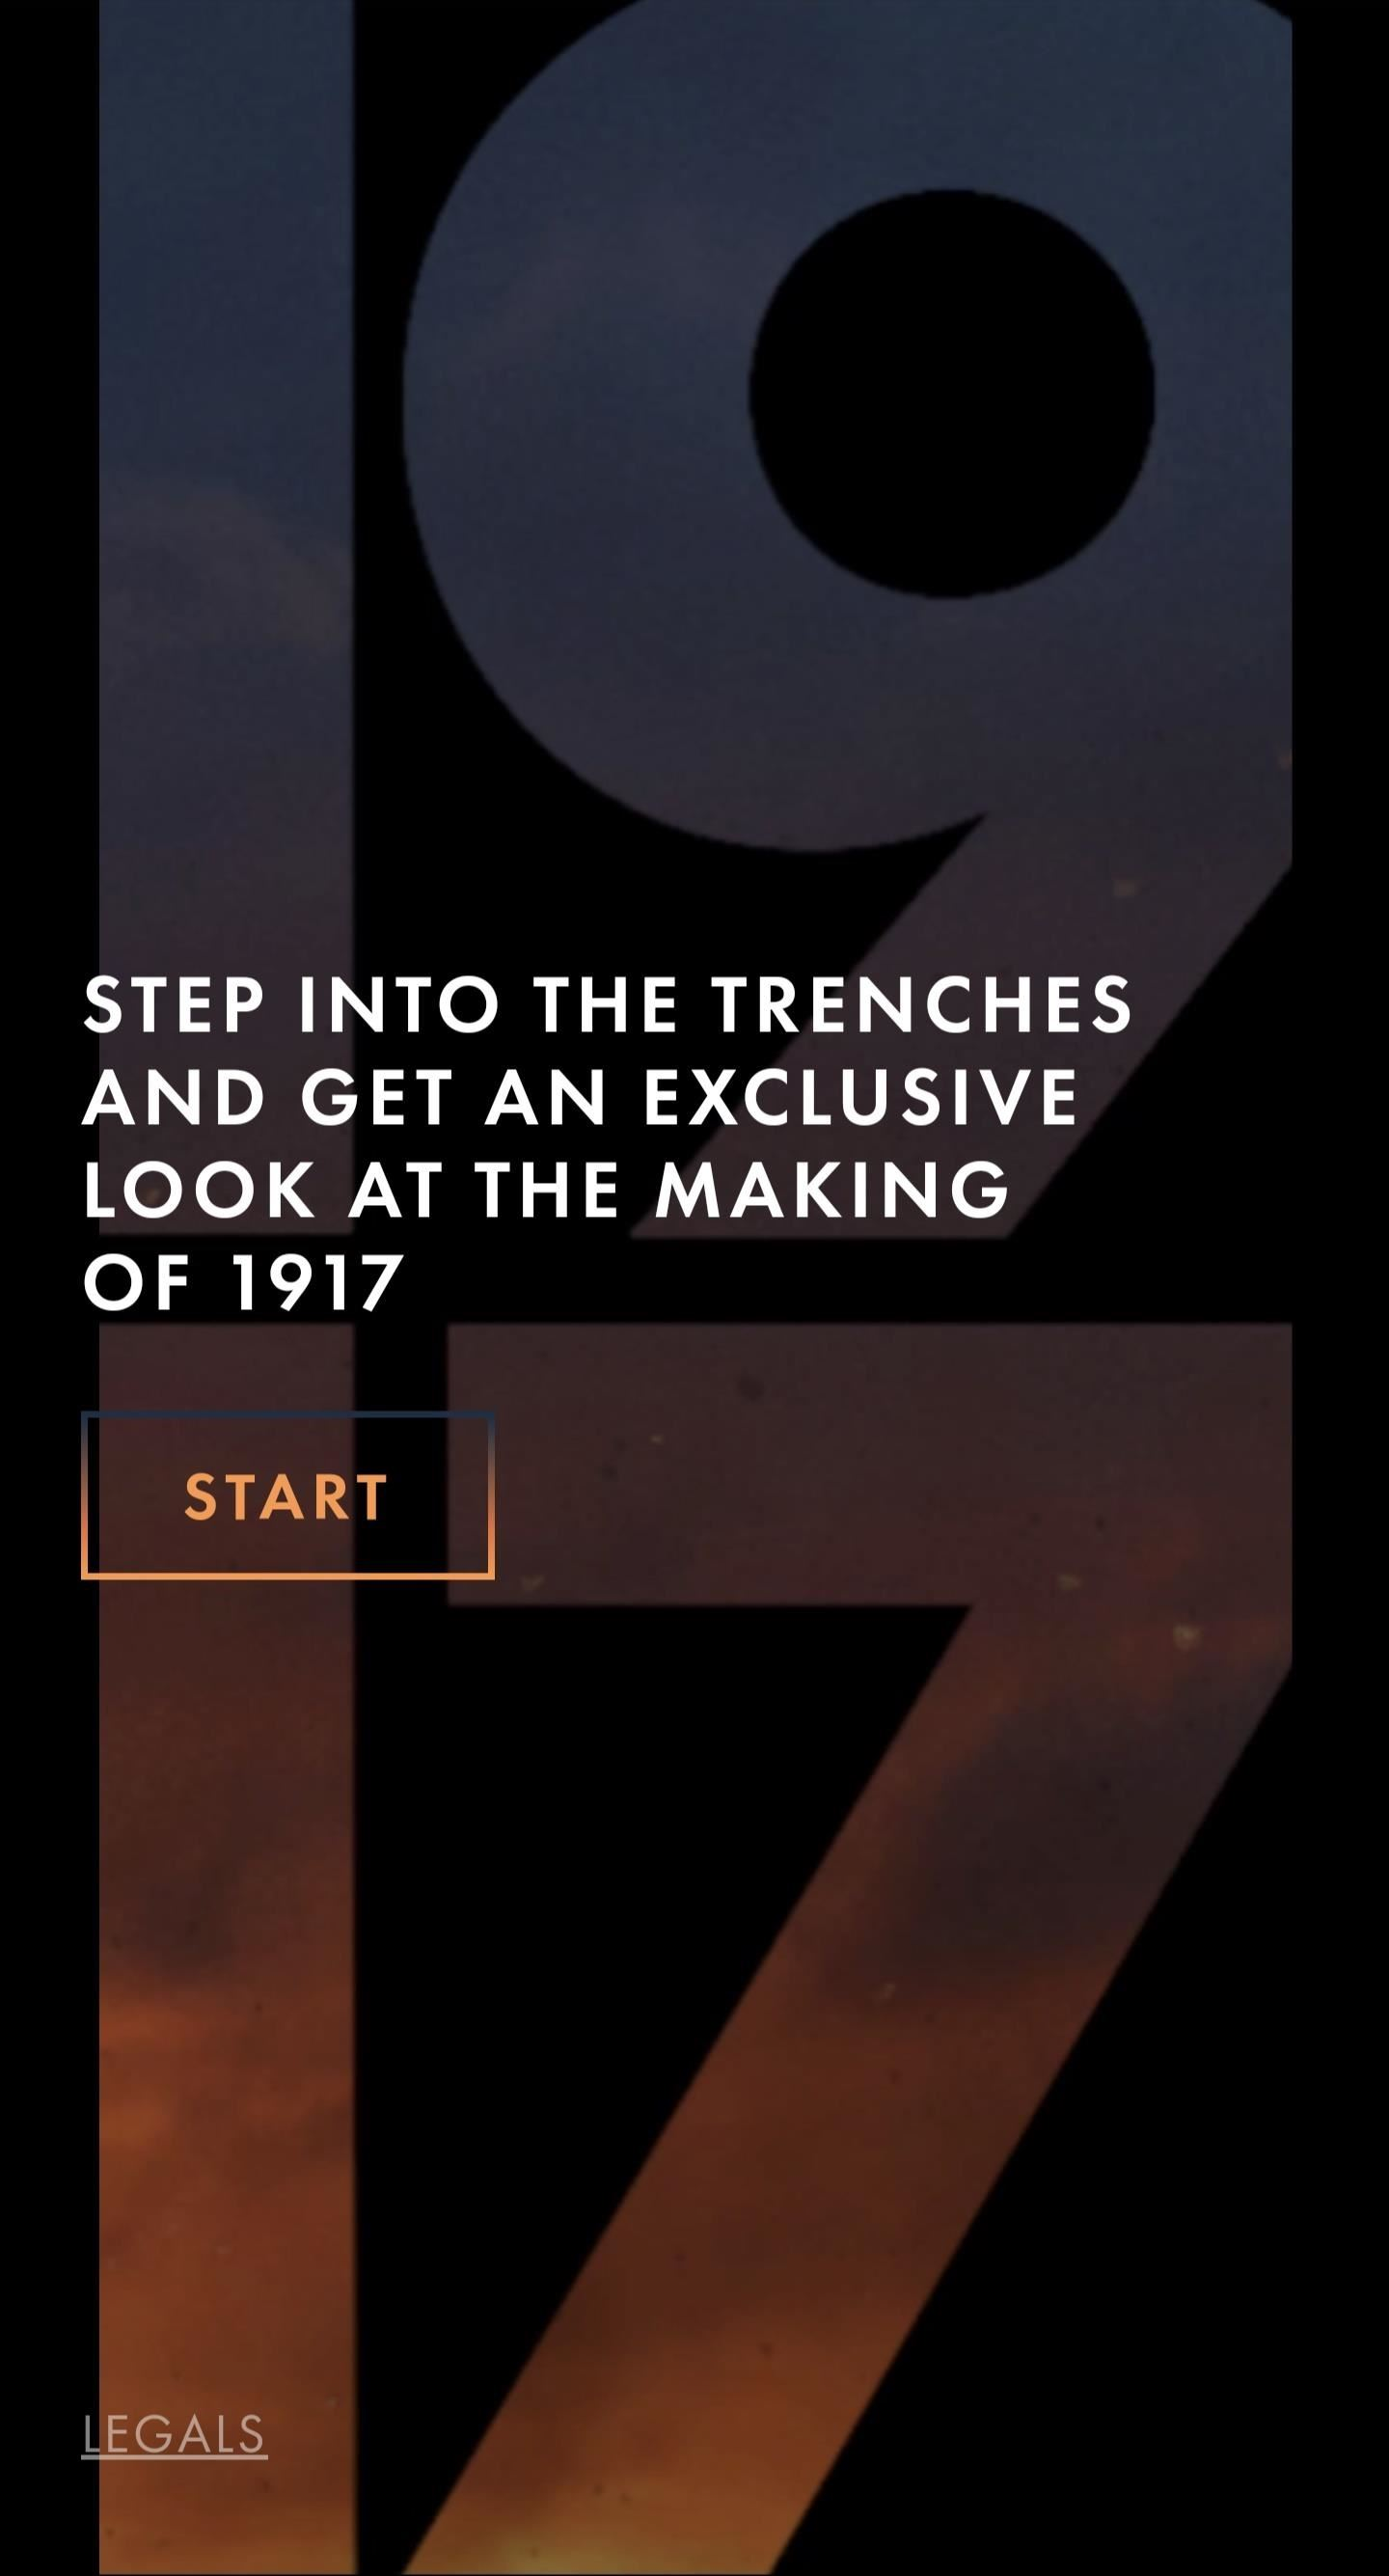 Explore the Grueling Wartime Trenches of Golden Globe Winning Movie '1917' via Web-Based AR Experience